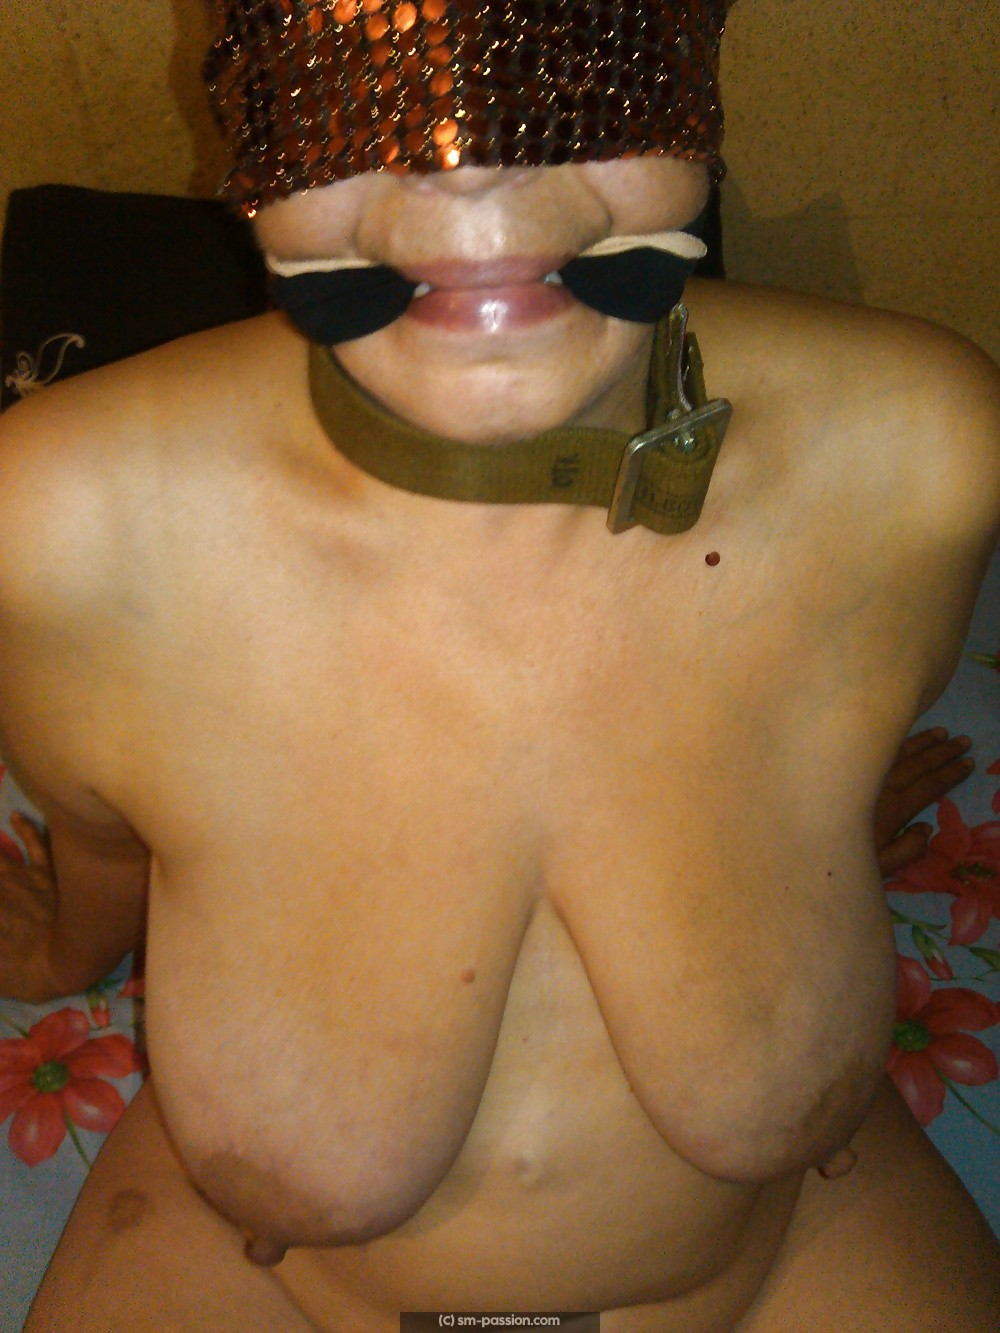 Blindfolded session hard BDSM a Bordeaux